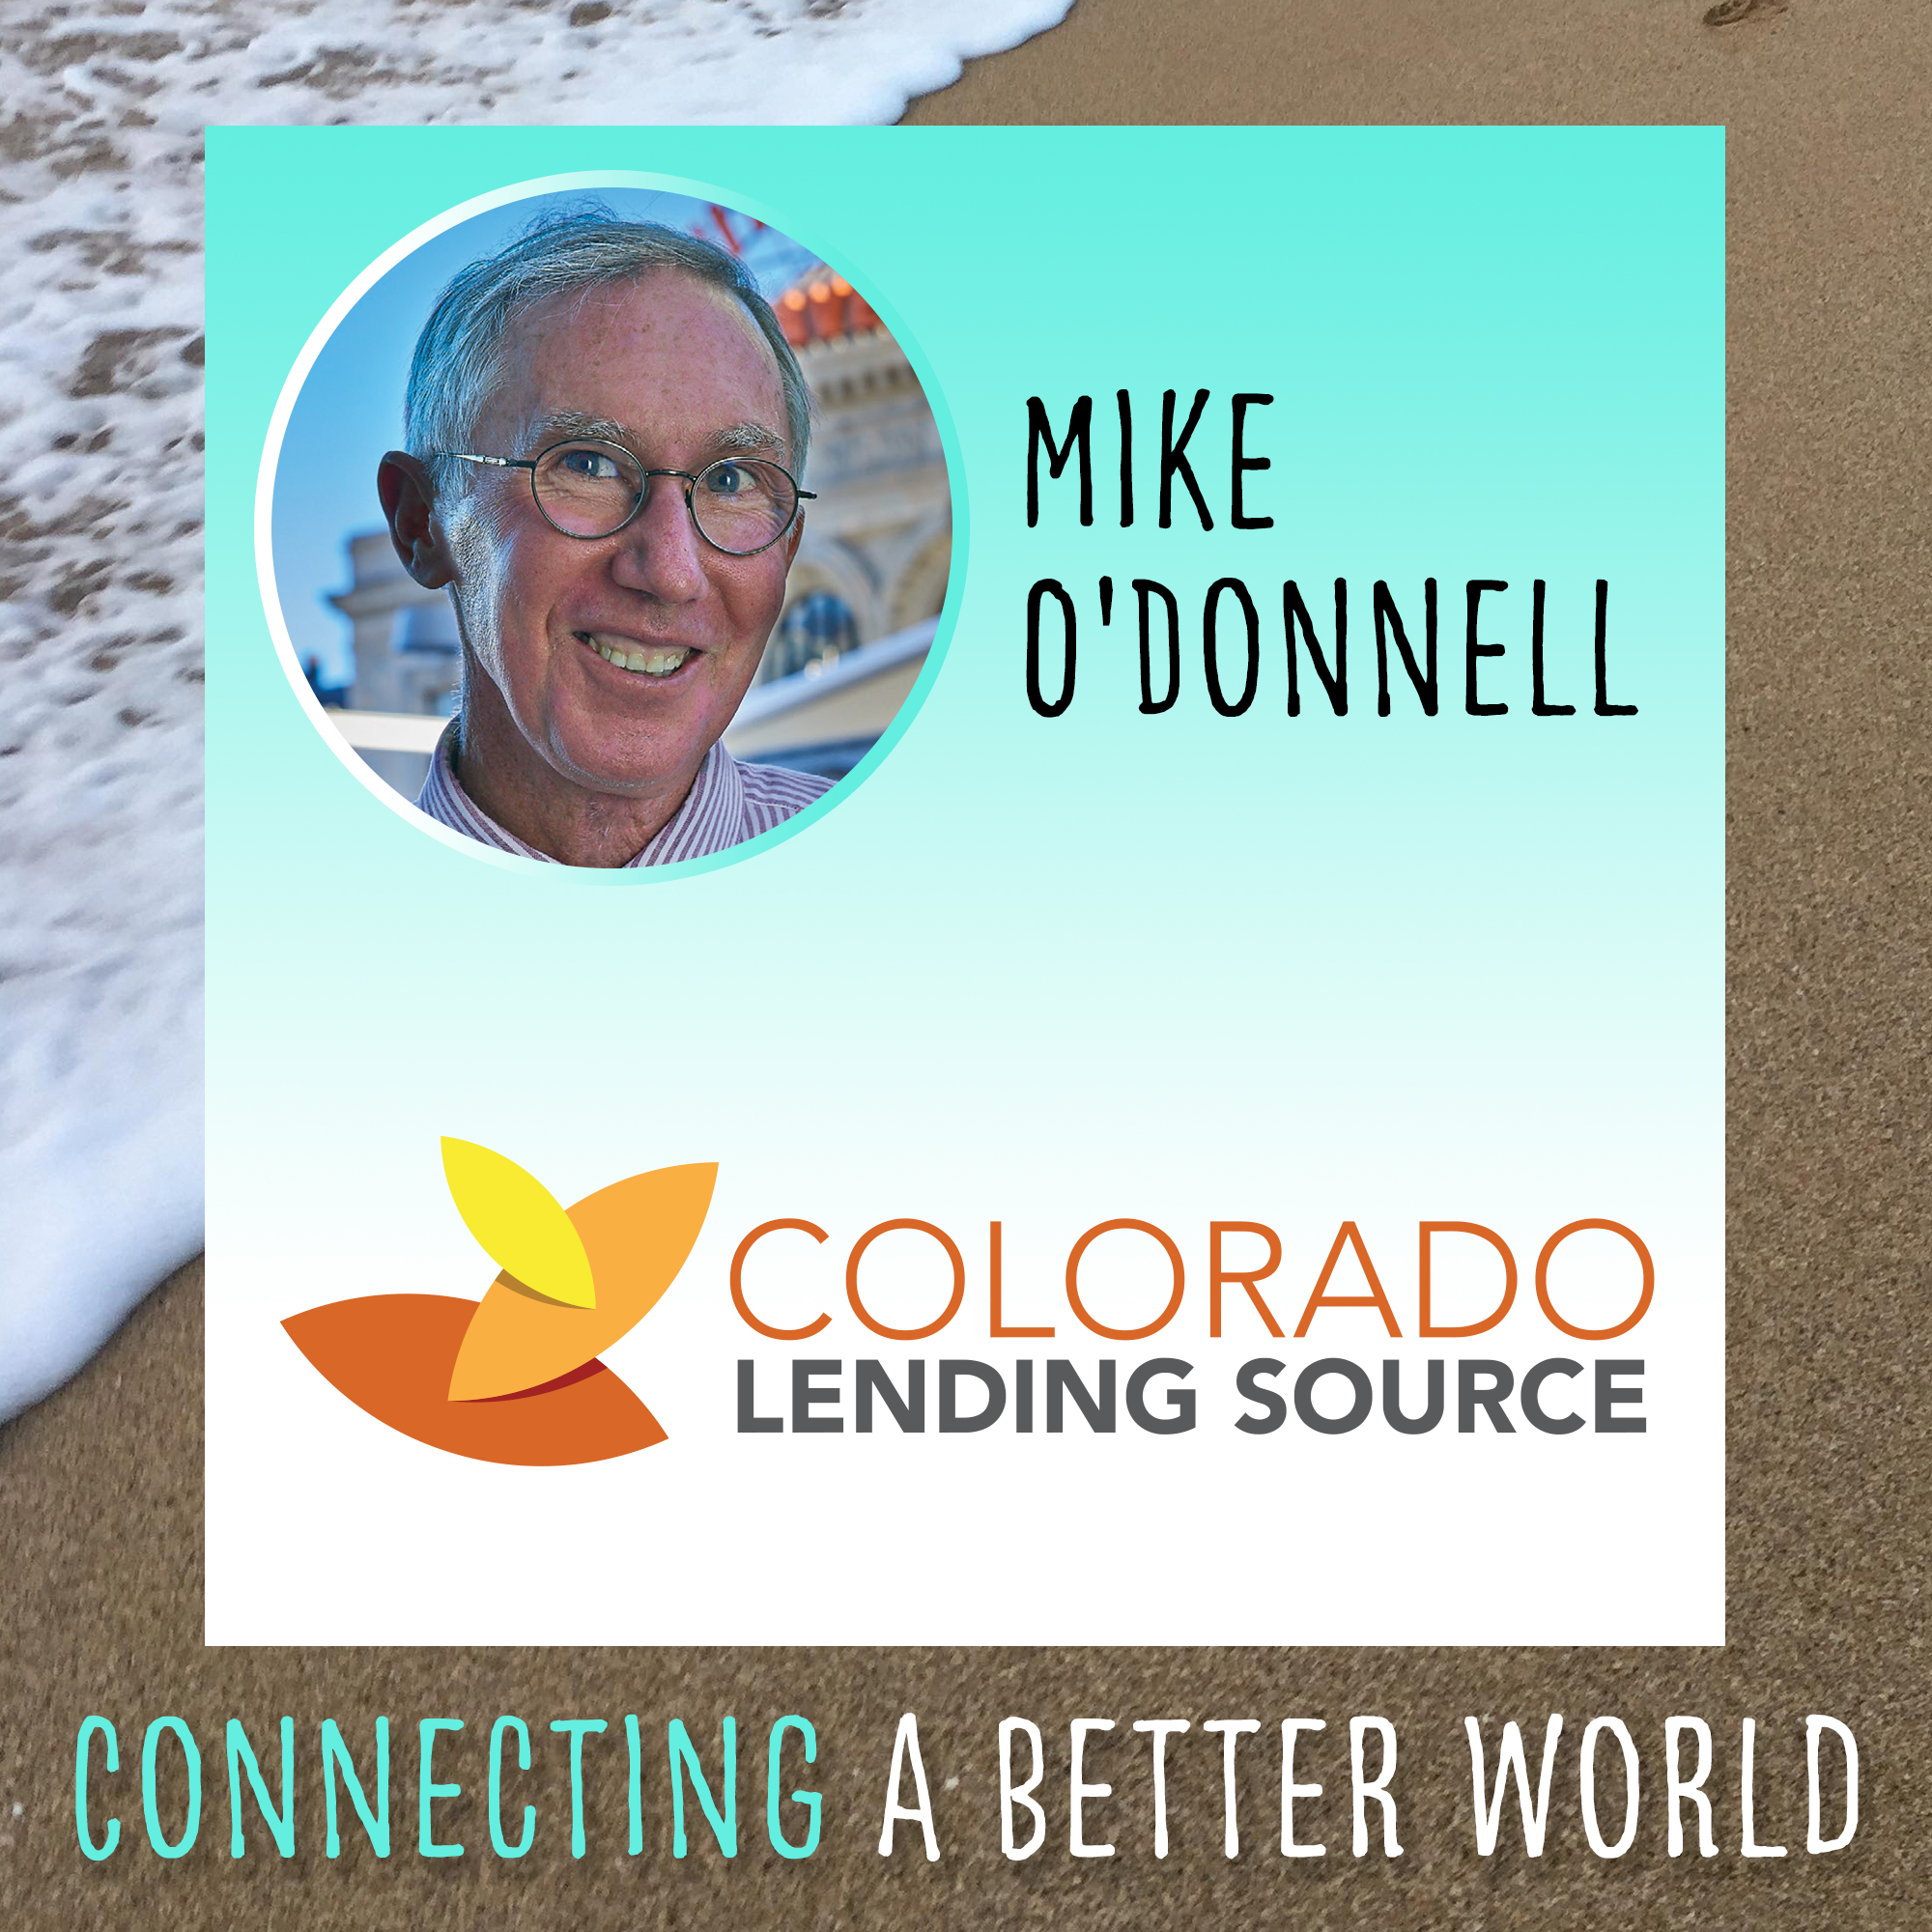 Mike O'Donnell of Colorado Lending Source